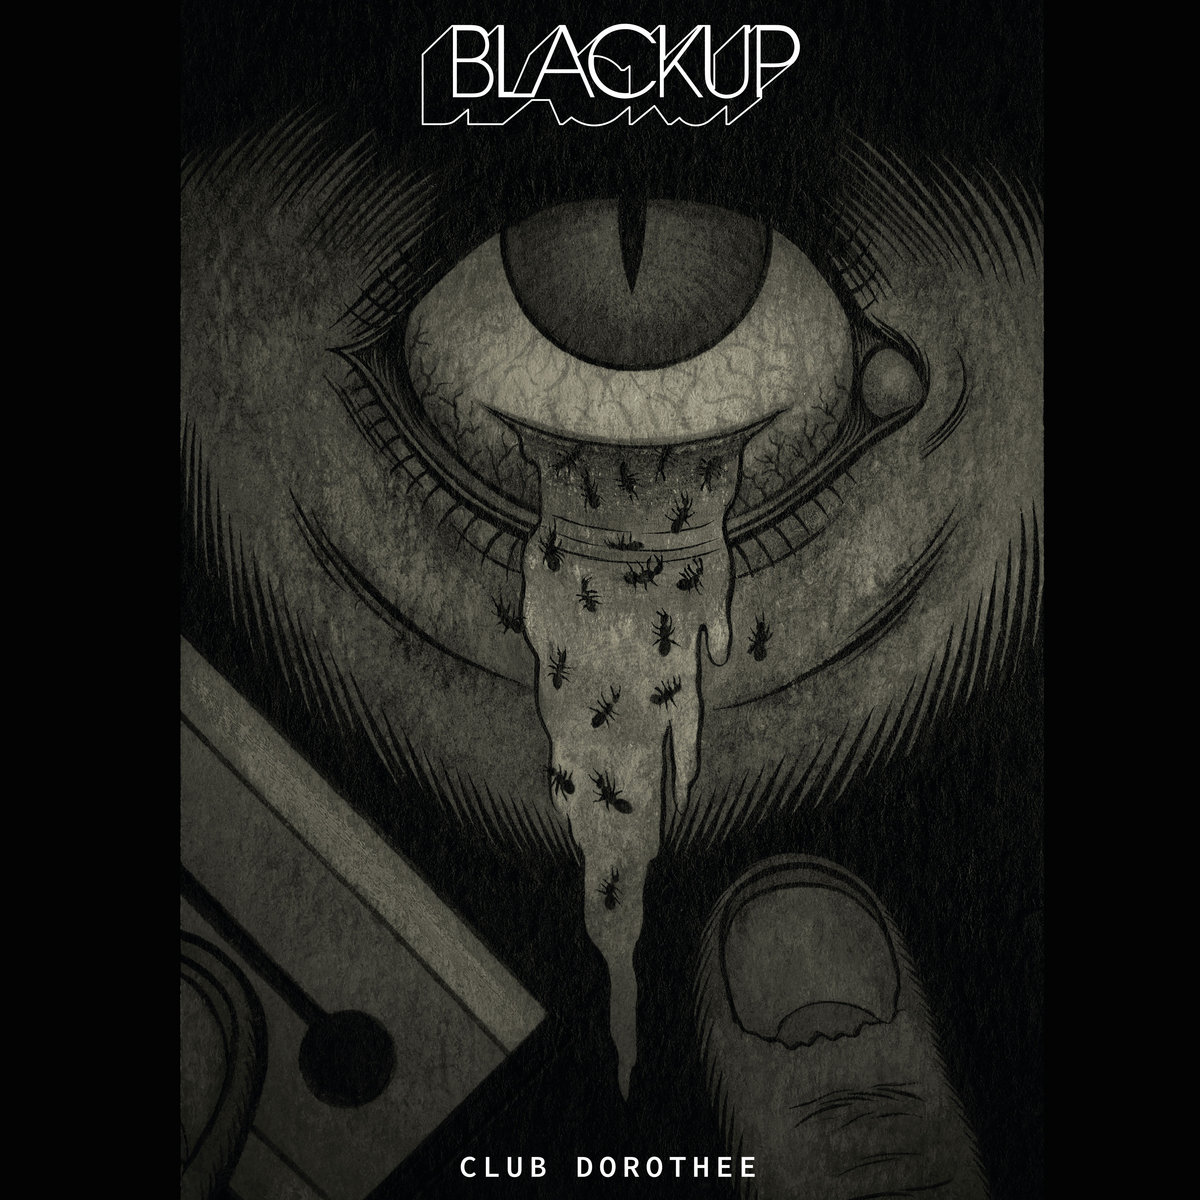 Blackup - Club Dorothee CD - Rookie Records